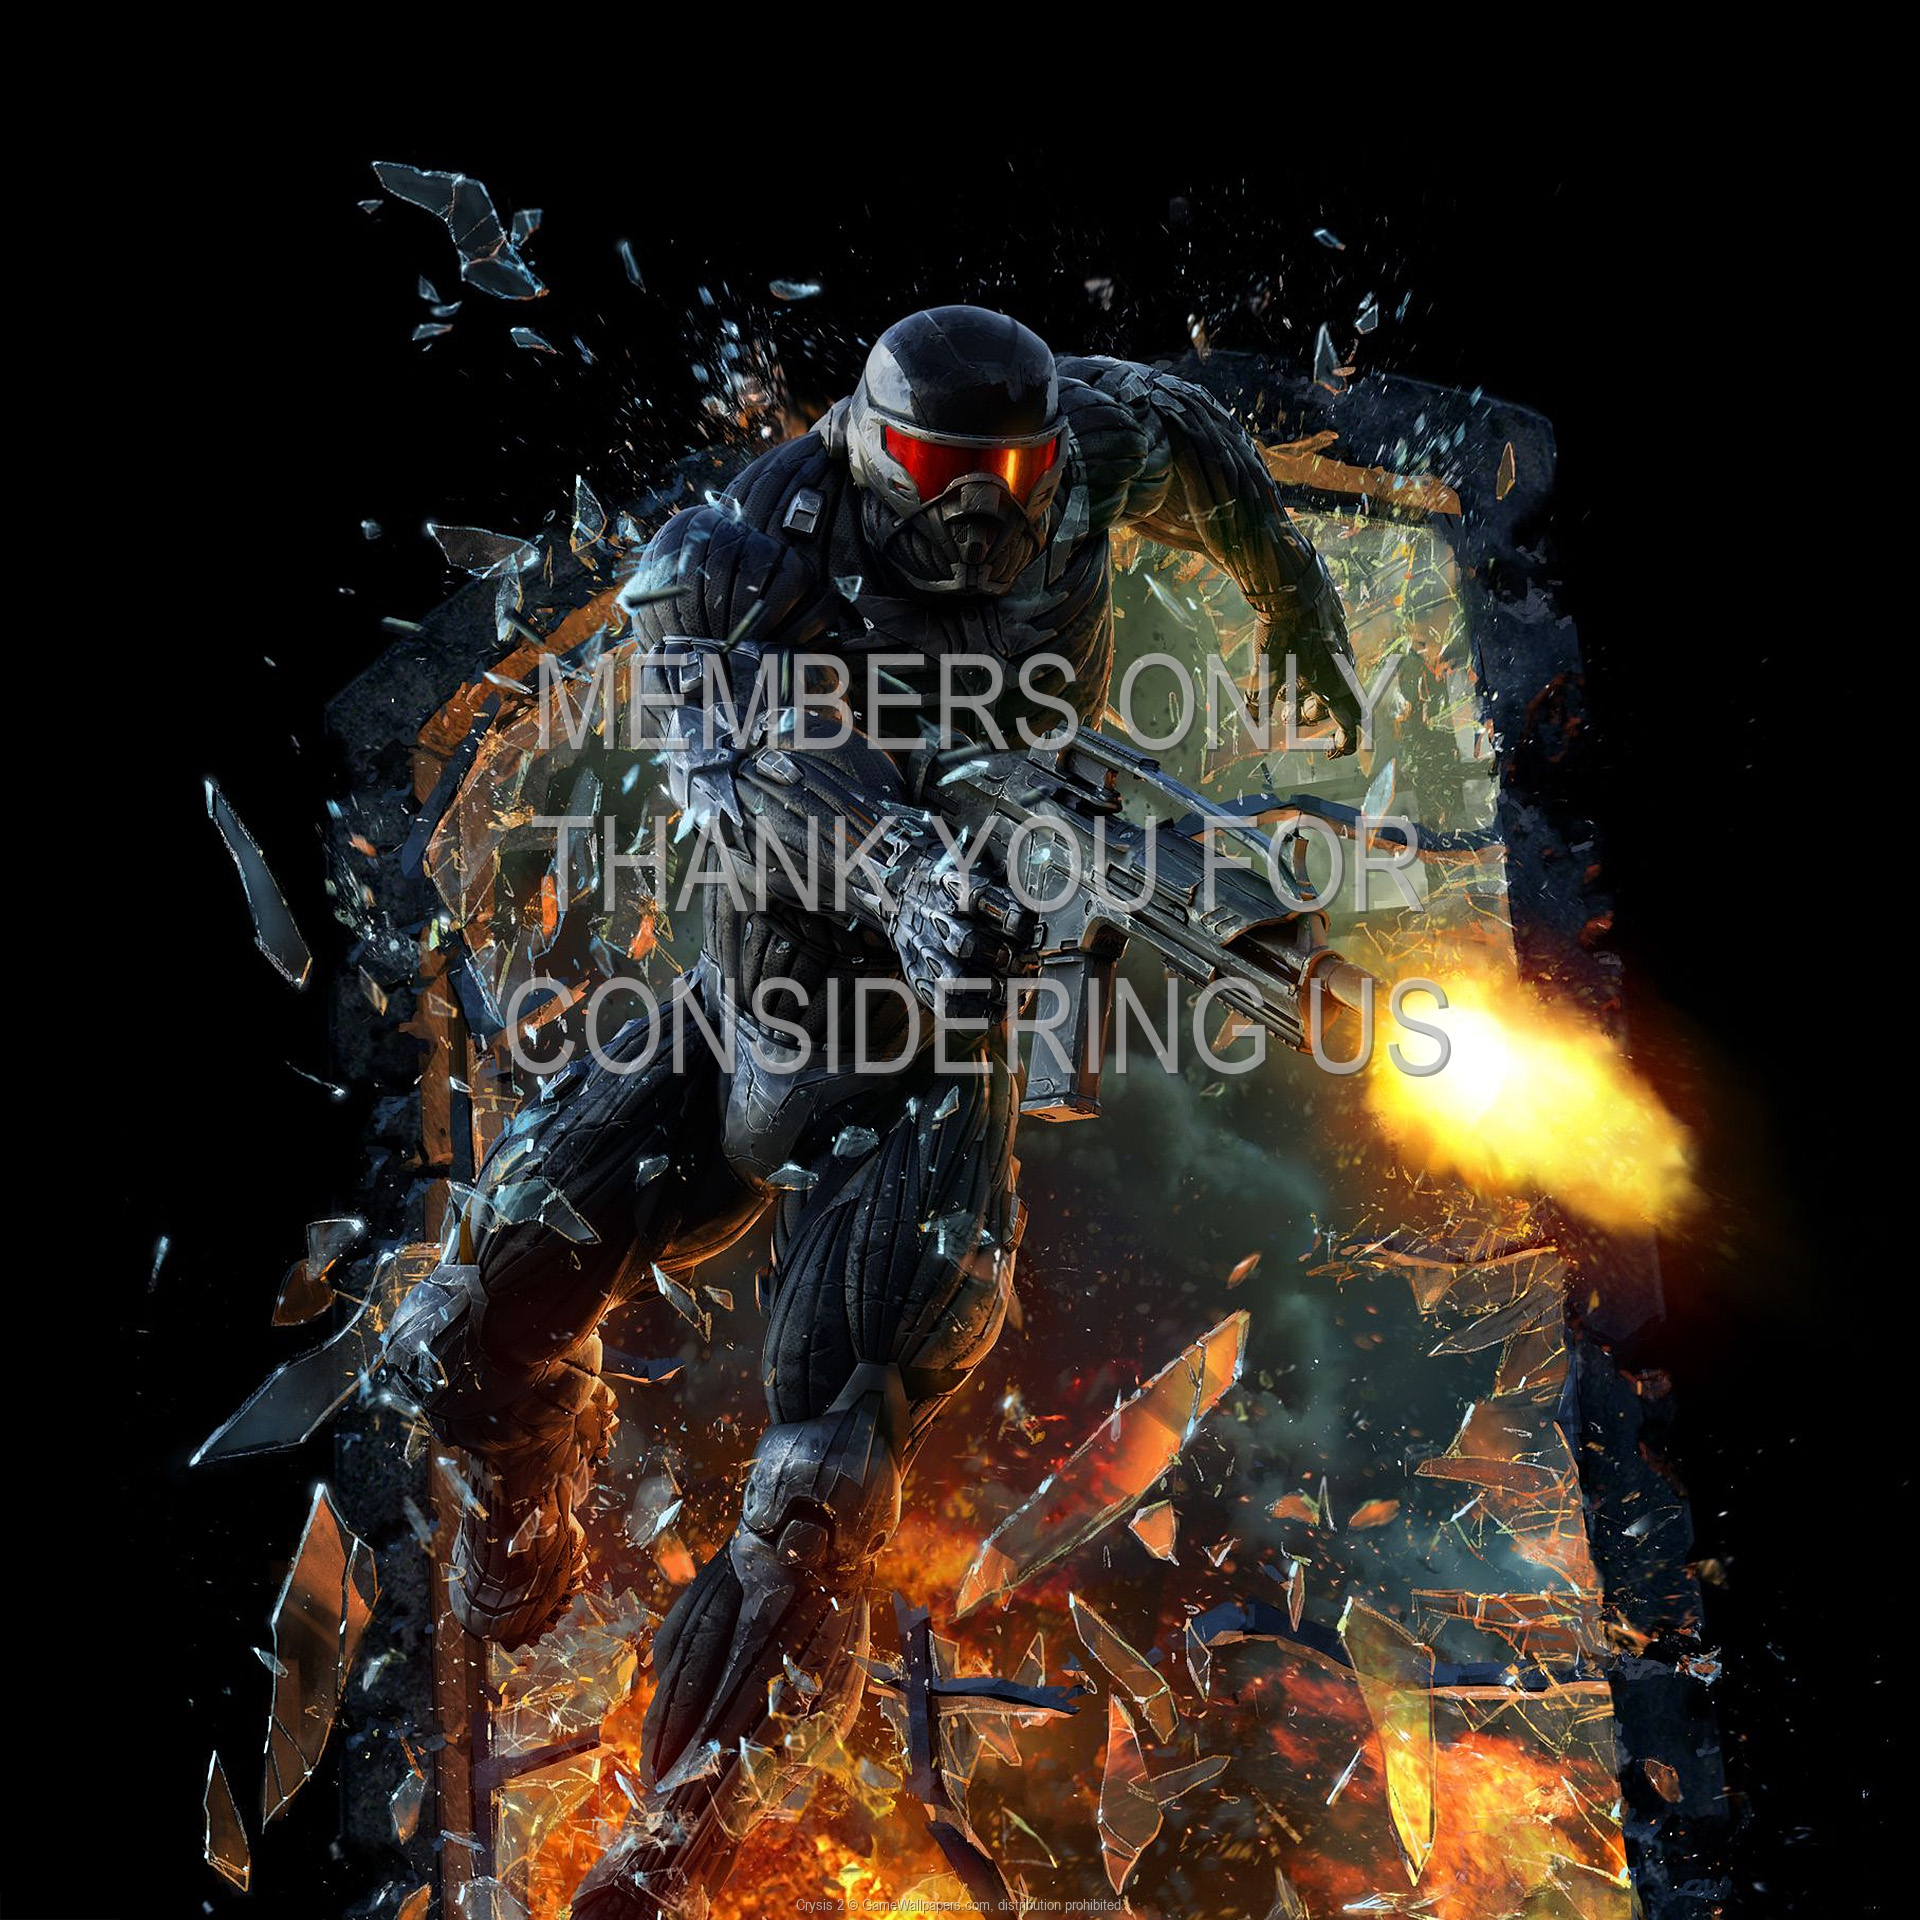 Crysis 2 1920x1080 Mobile wallpaper or background 07